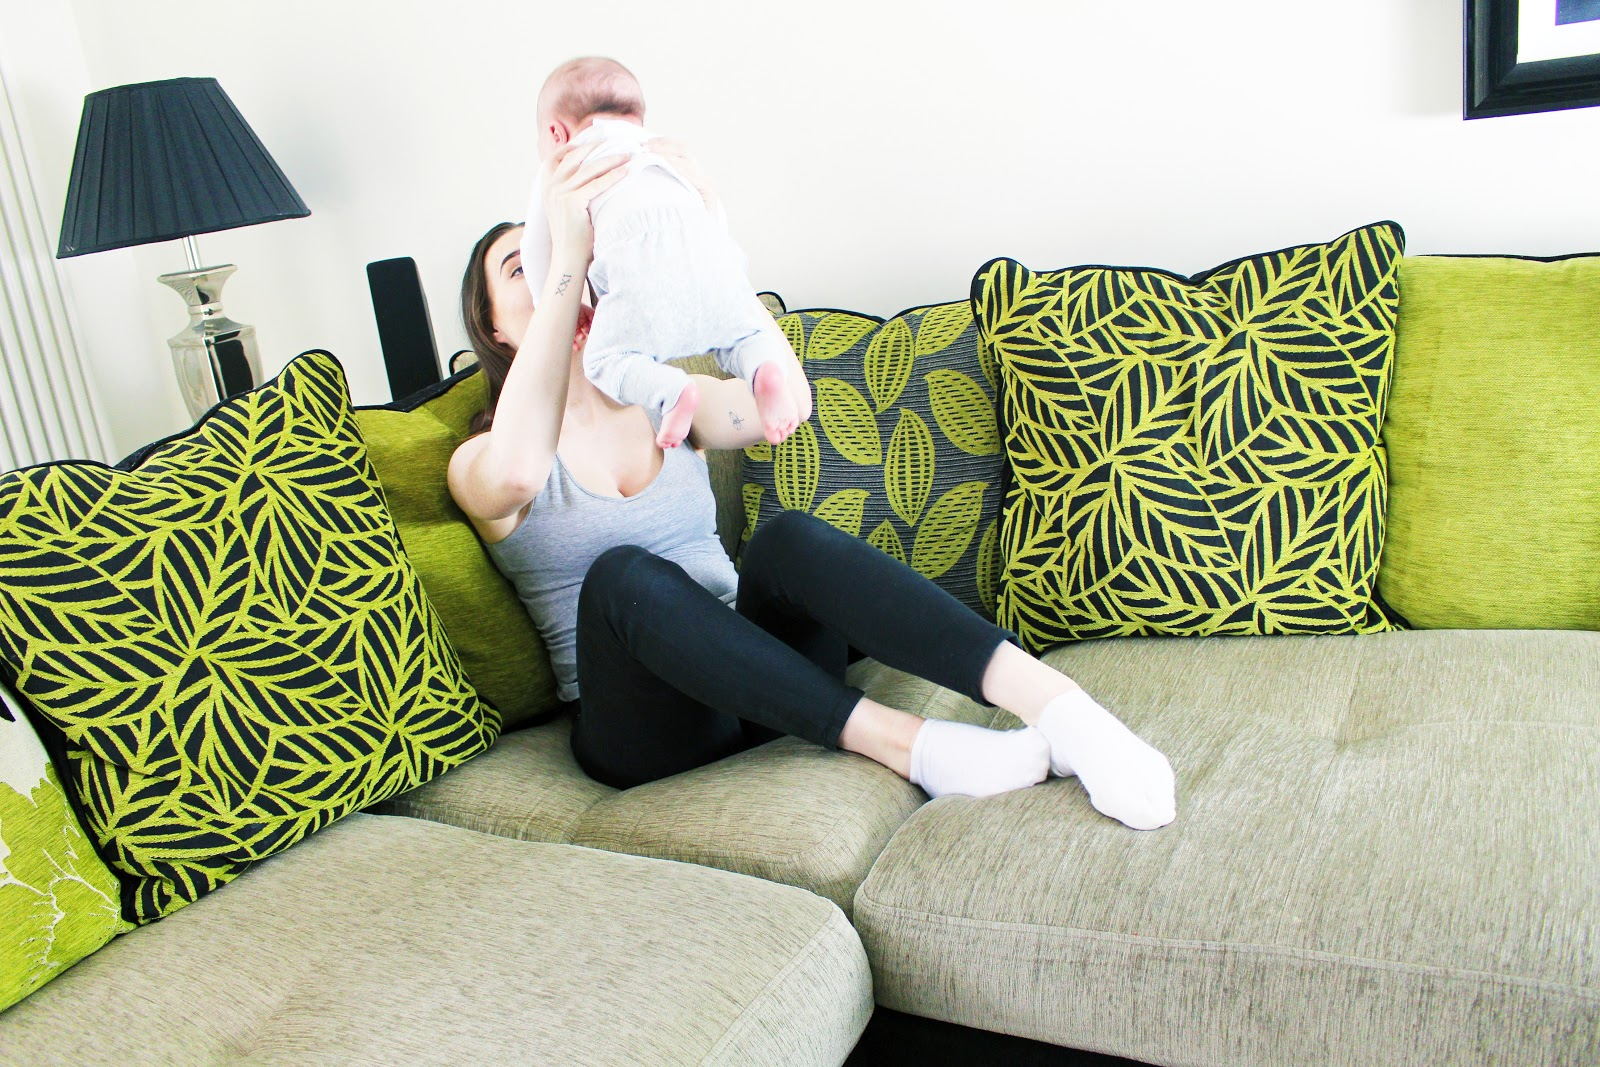 Young Mother With Newborn Struggles Post Natal Depression